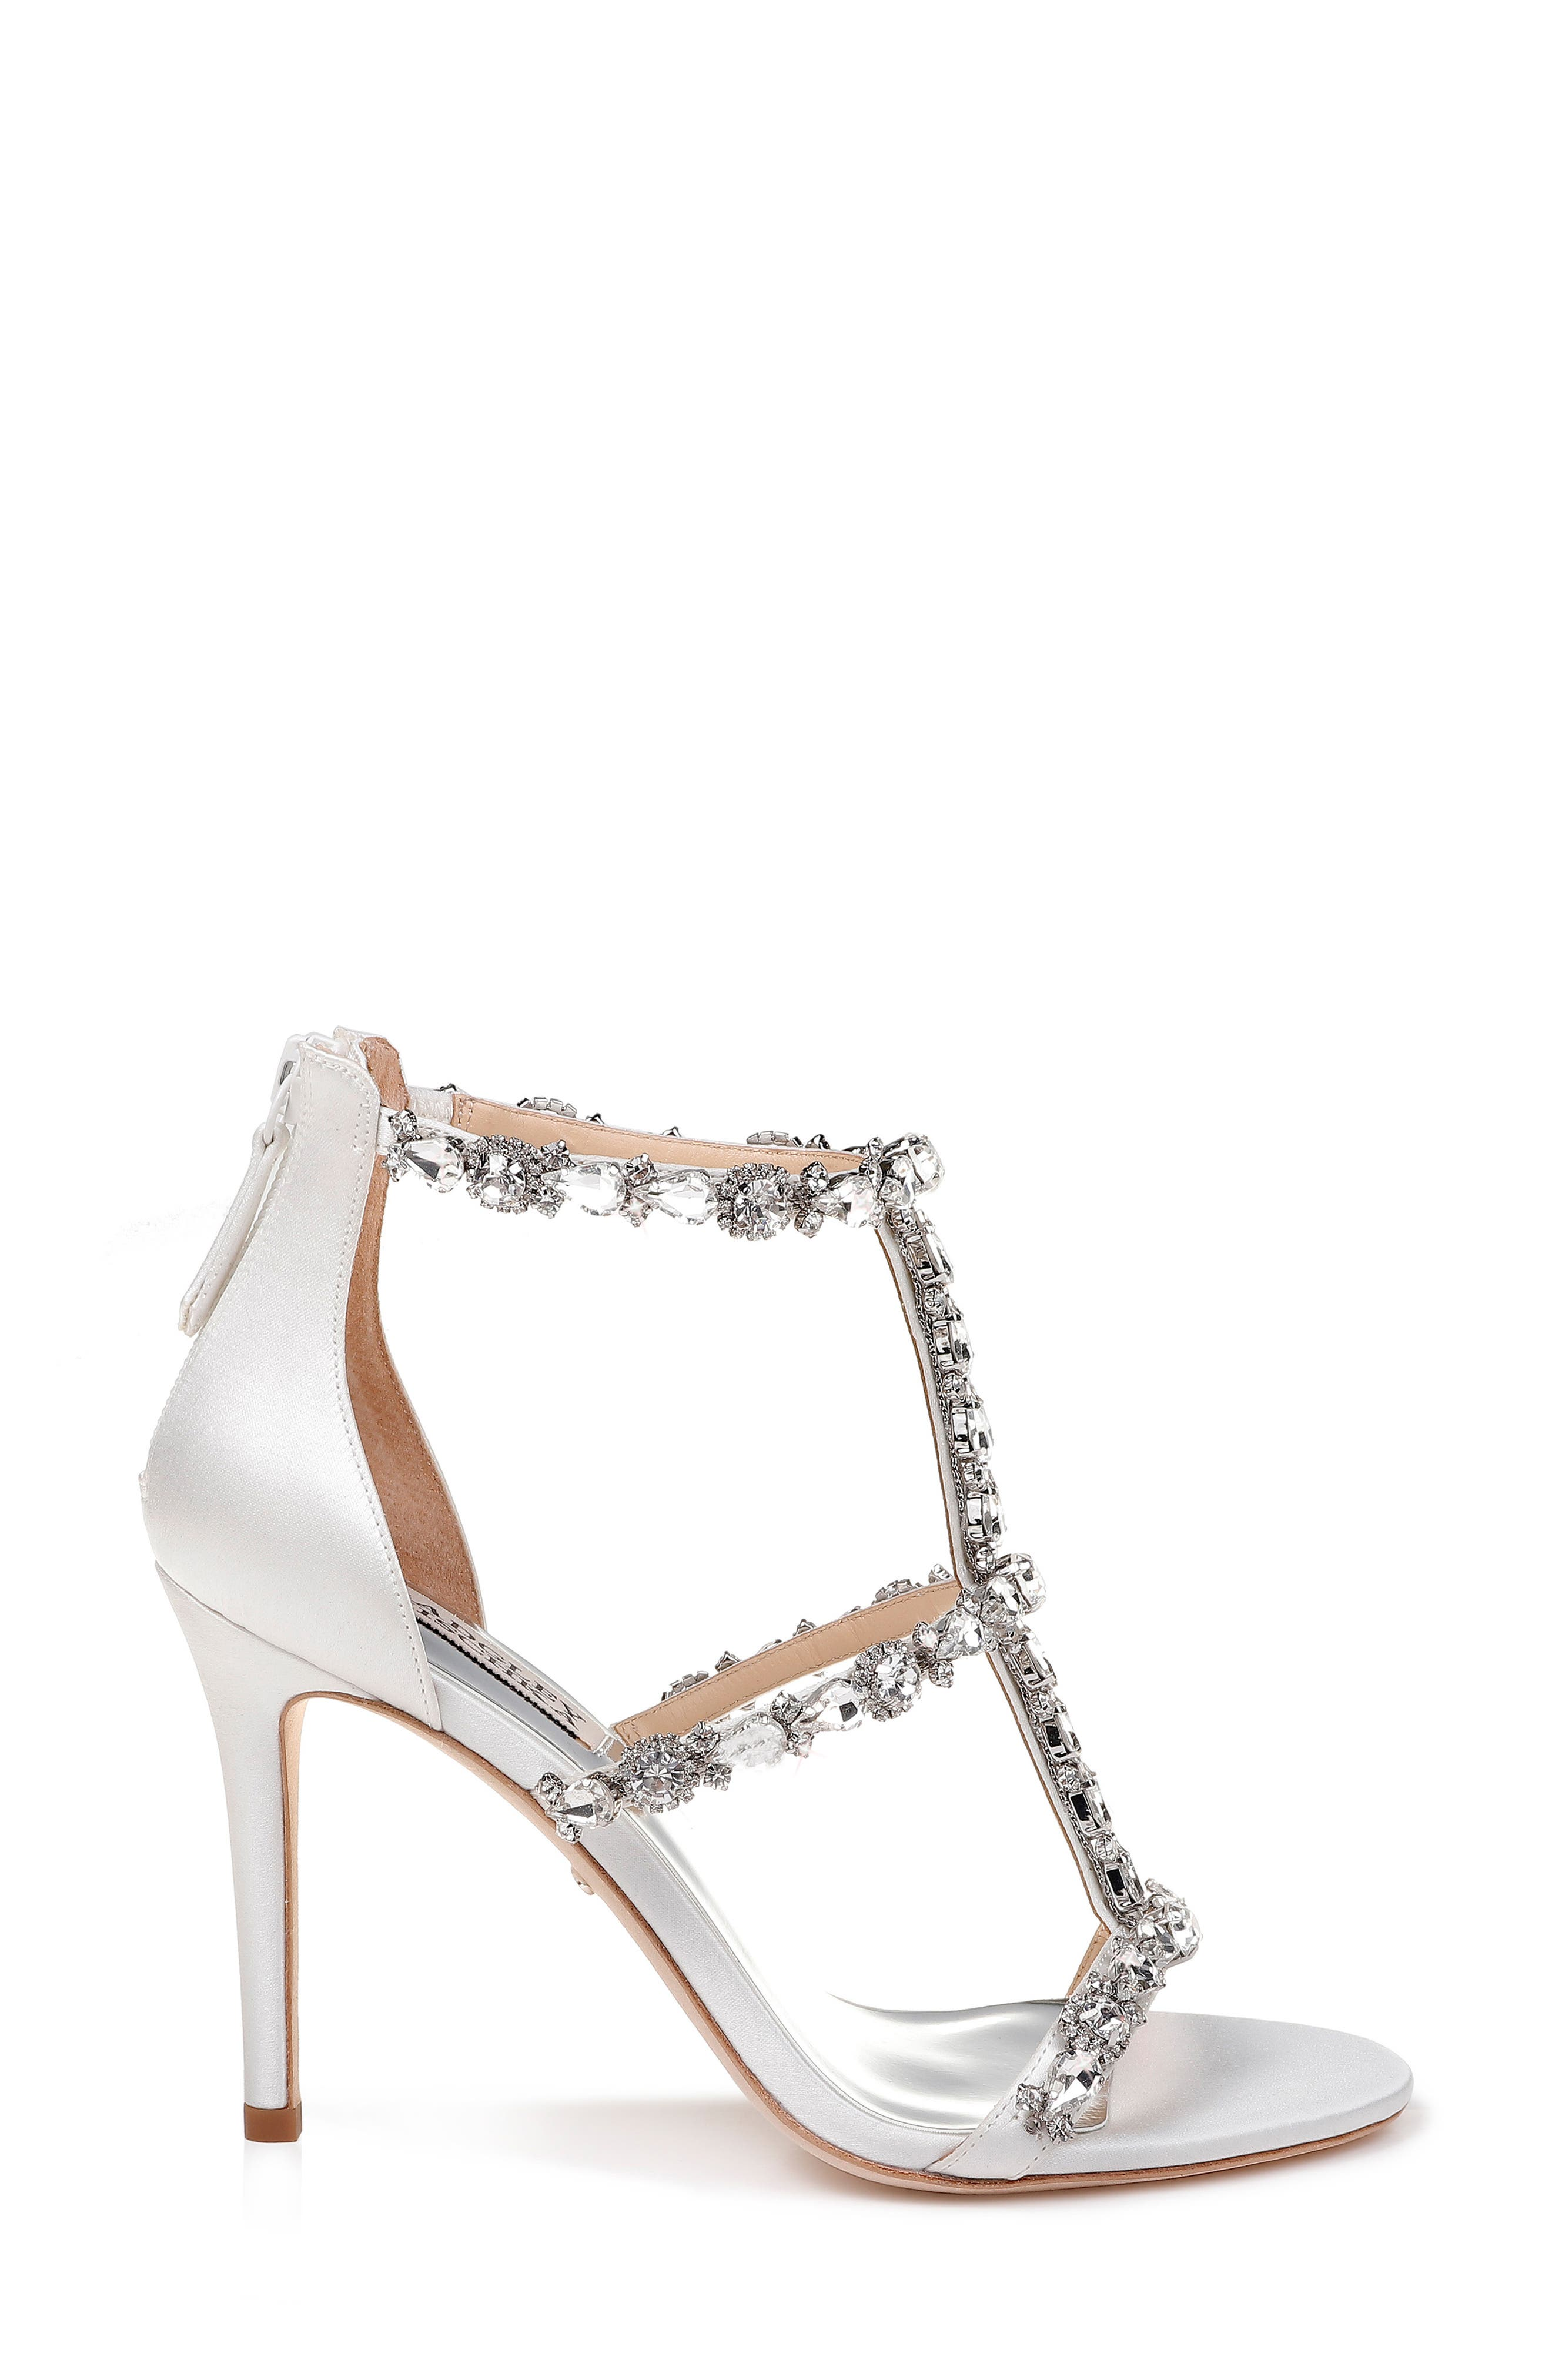 Querida Embellished Sandal,                             Alternate thumbnail 3, color,                             SOFT WHITE SATIN